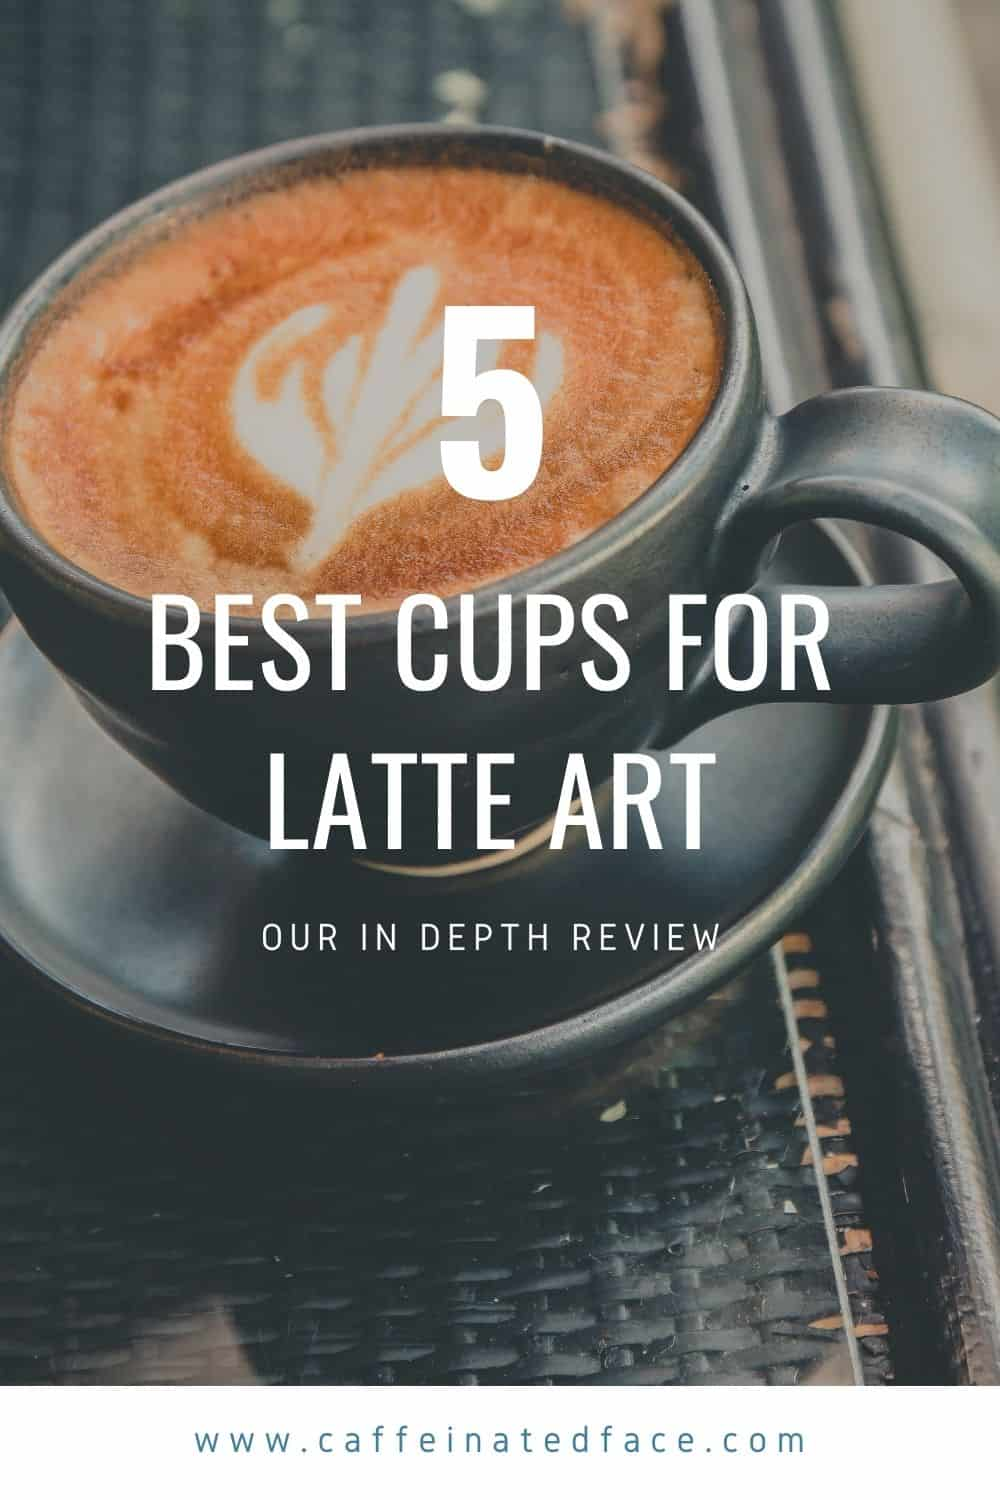 best cups for latte art 2020 reviews